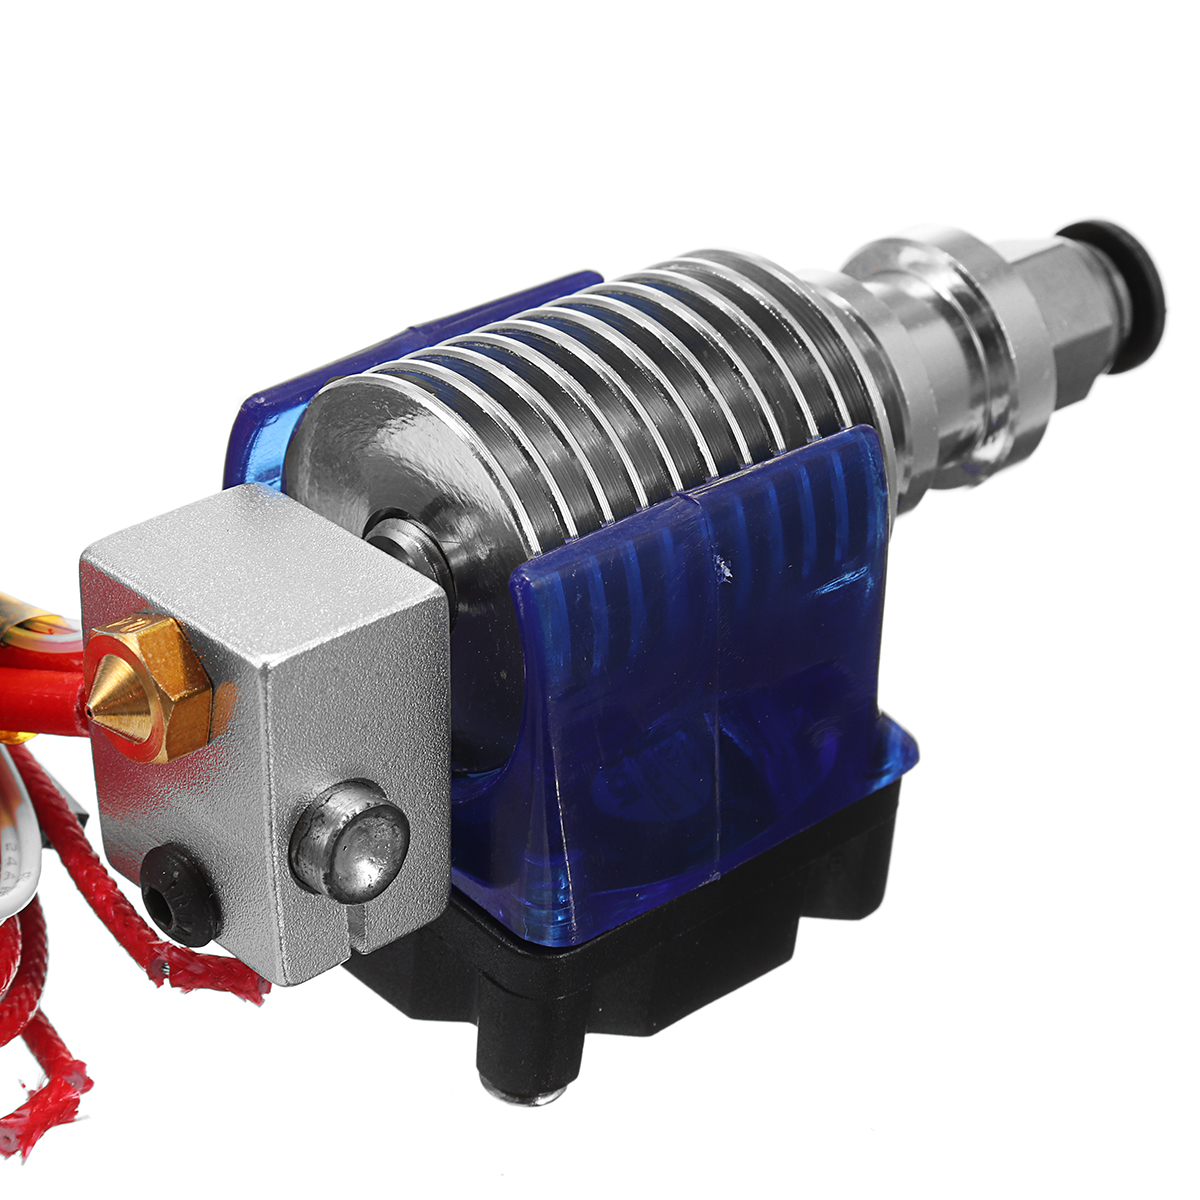 0.4mm J-head Hotend Extruder Remote Kit Suppport 1.75mm PLA/ABS Filament with Cooling Fan + Fan Cove